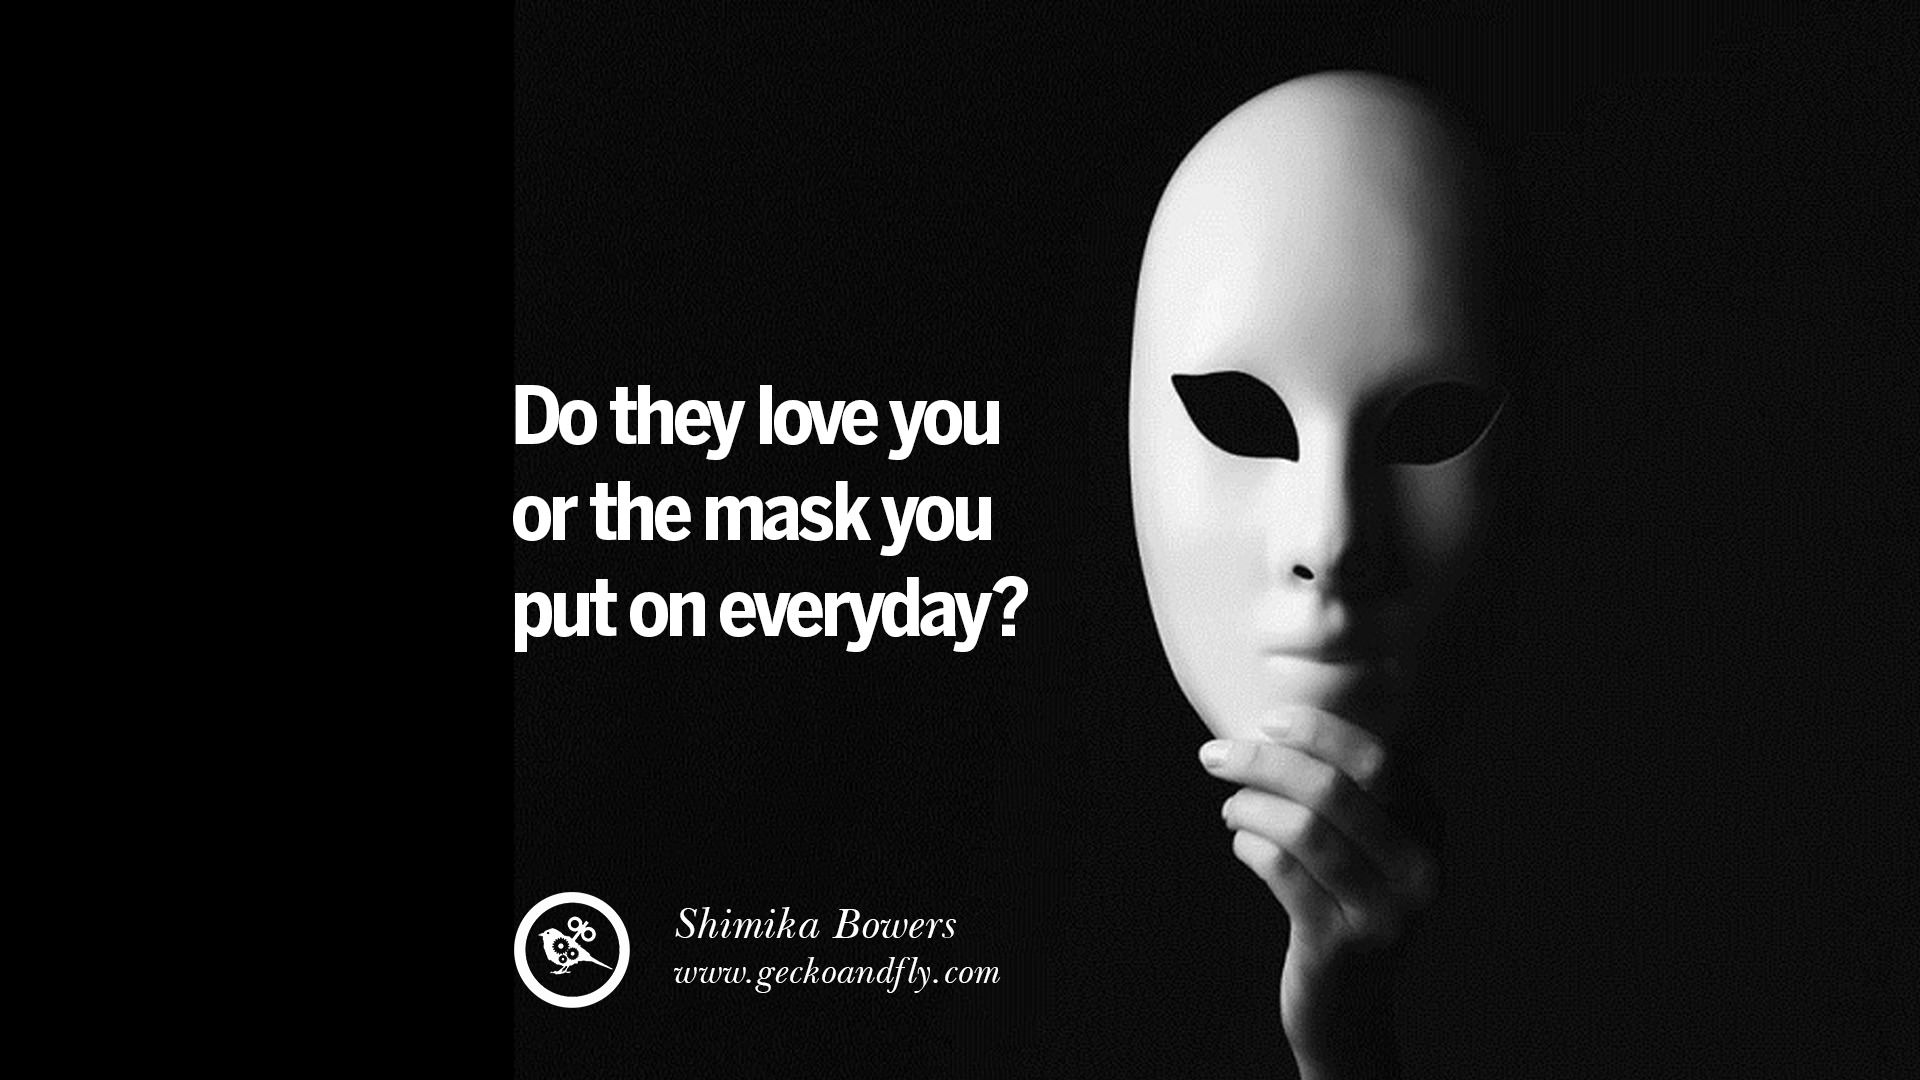 Good Girls Lie Wallpaper 20 Quotes On Wearing A Mask Lying And Hiding Oneself